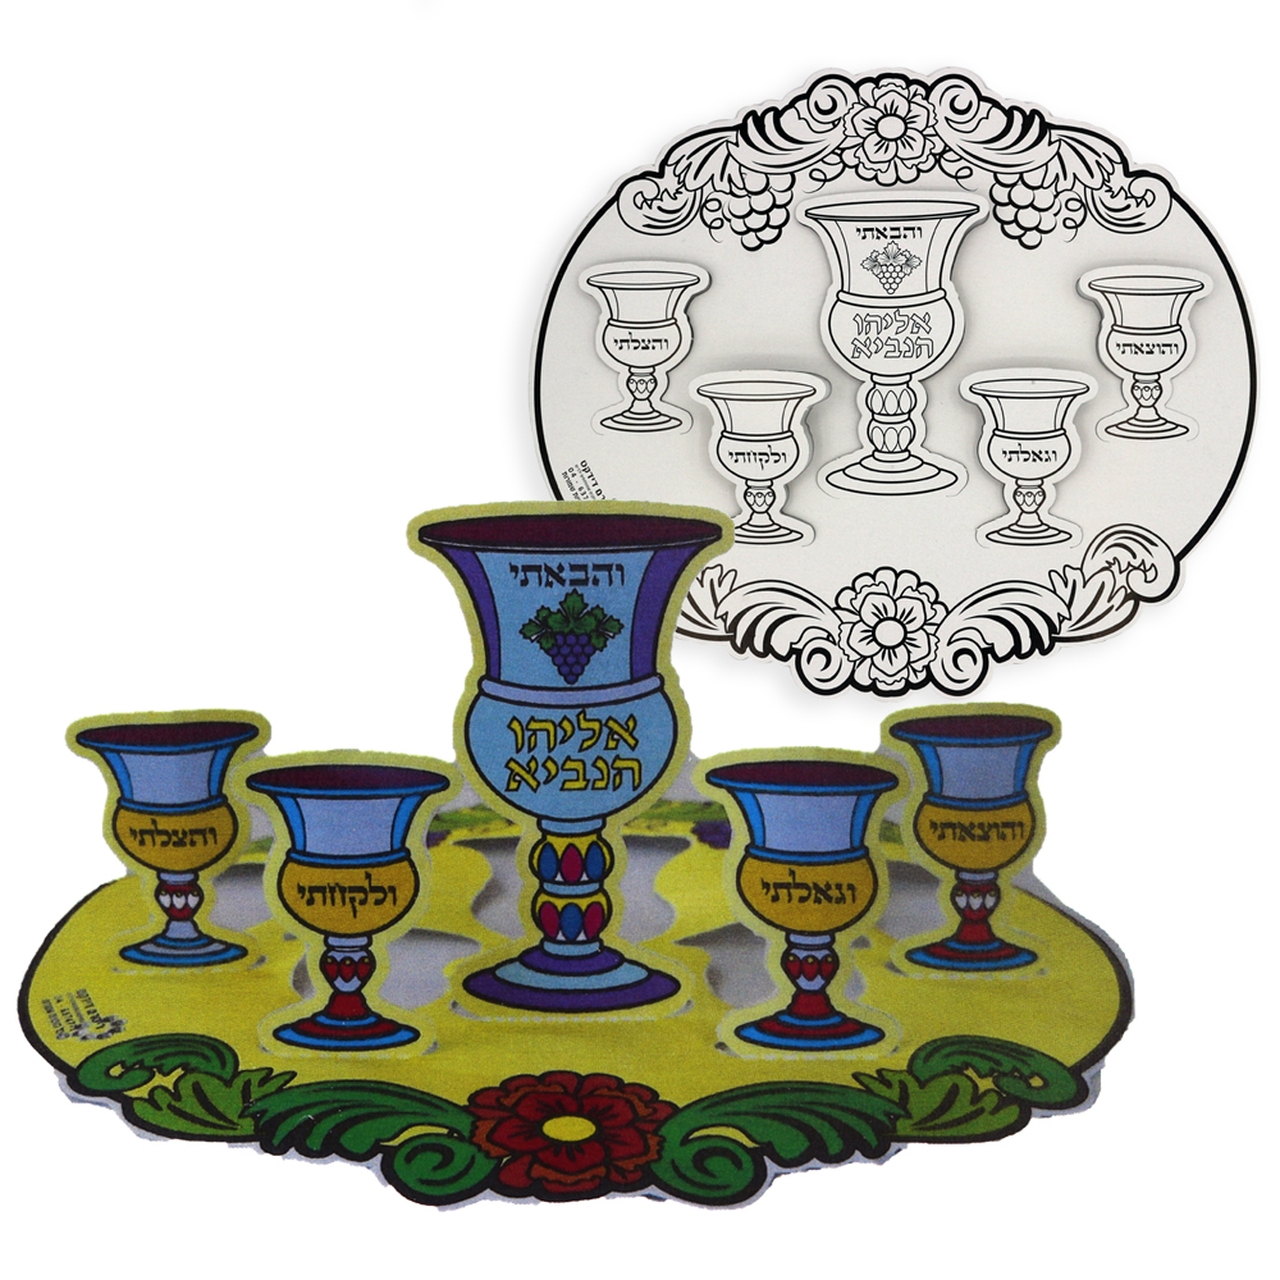 Free clipart seder 4 cups of wine clipart black and white library Passover 4 Cups Craft Projects (36) clipart black and white library